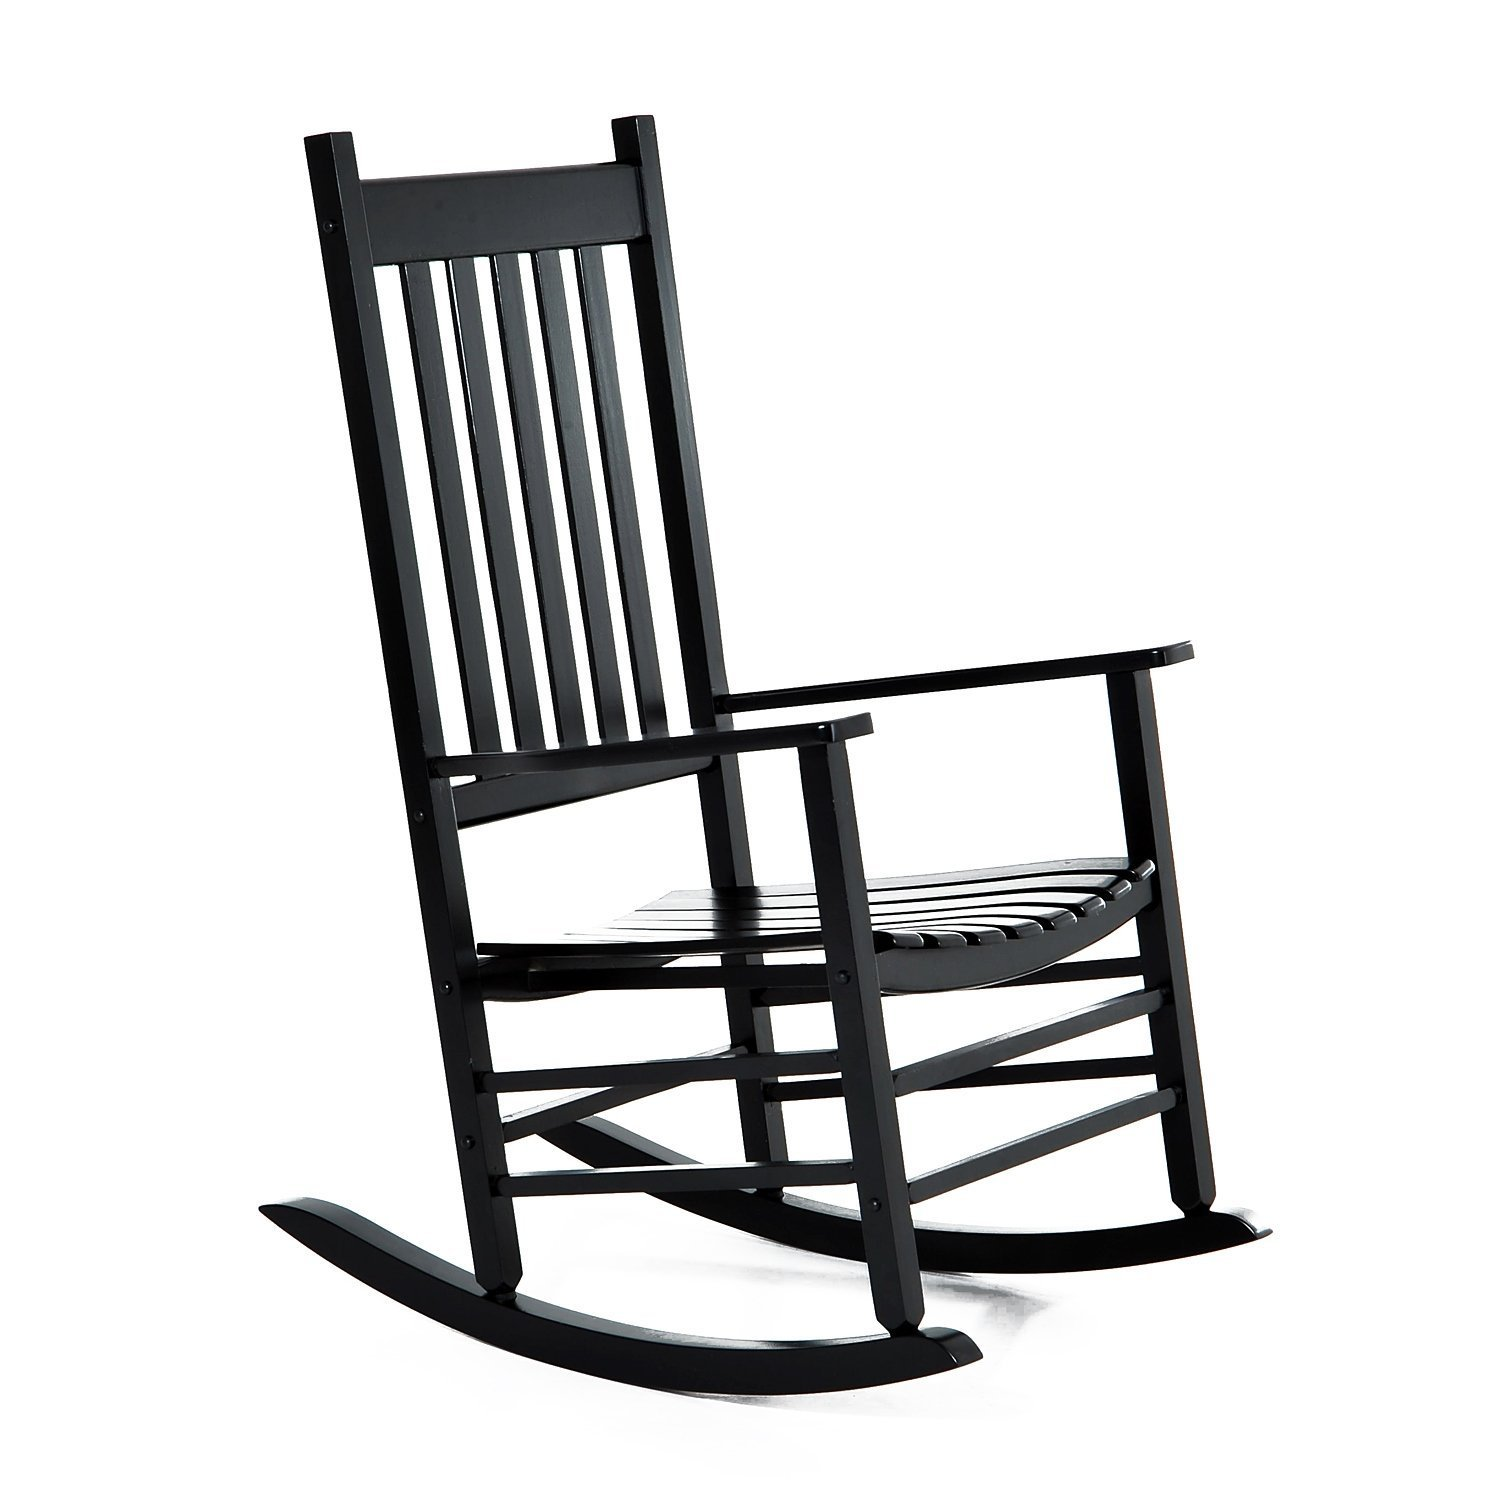 Outsunny Porch Rocking Chair - Outdoor Patio Wooden Rocker - Black by Outsunny (Image #1)